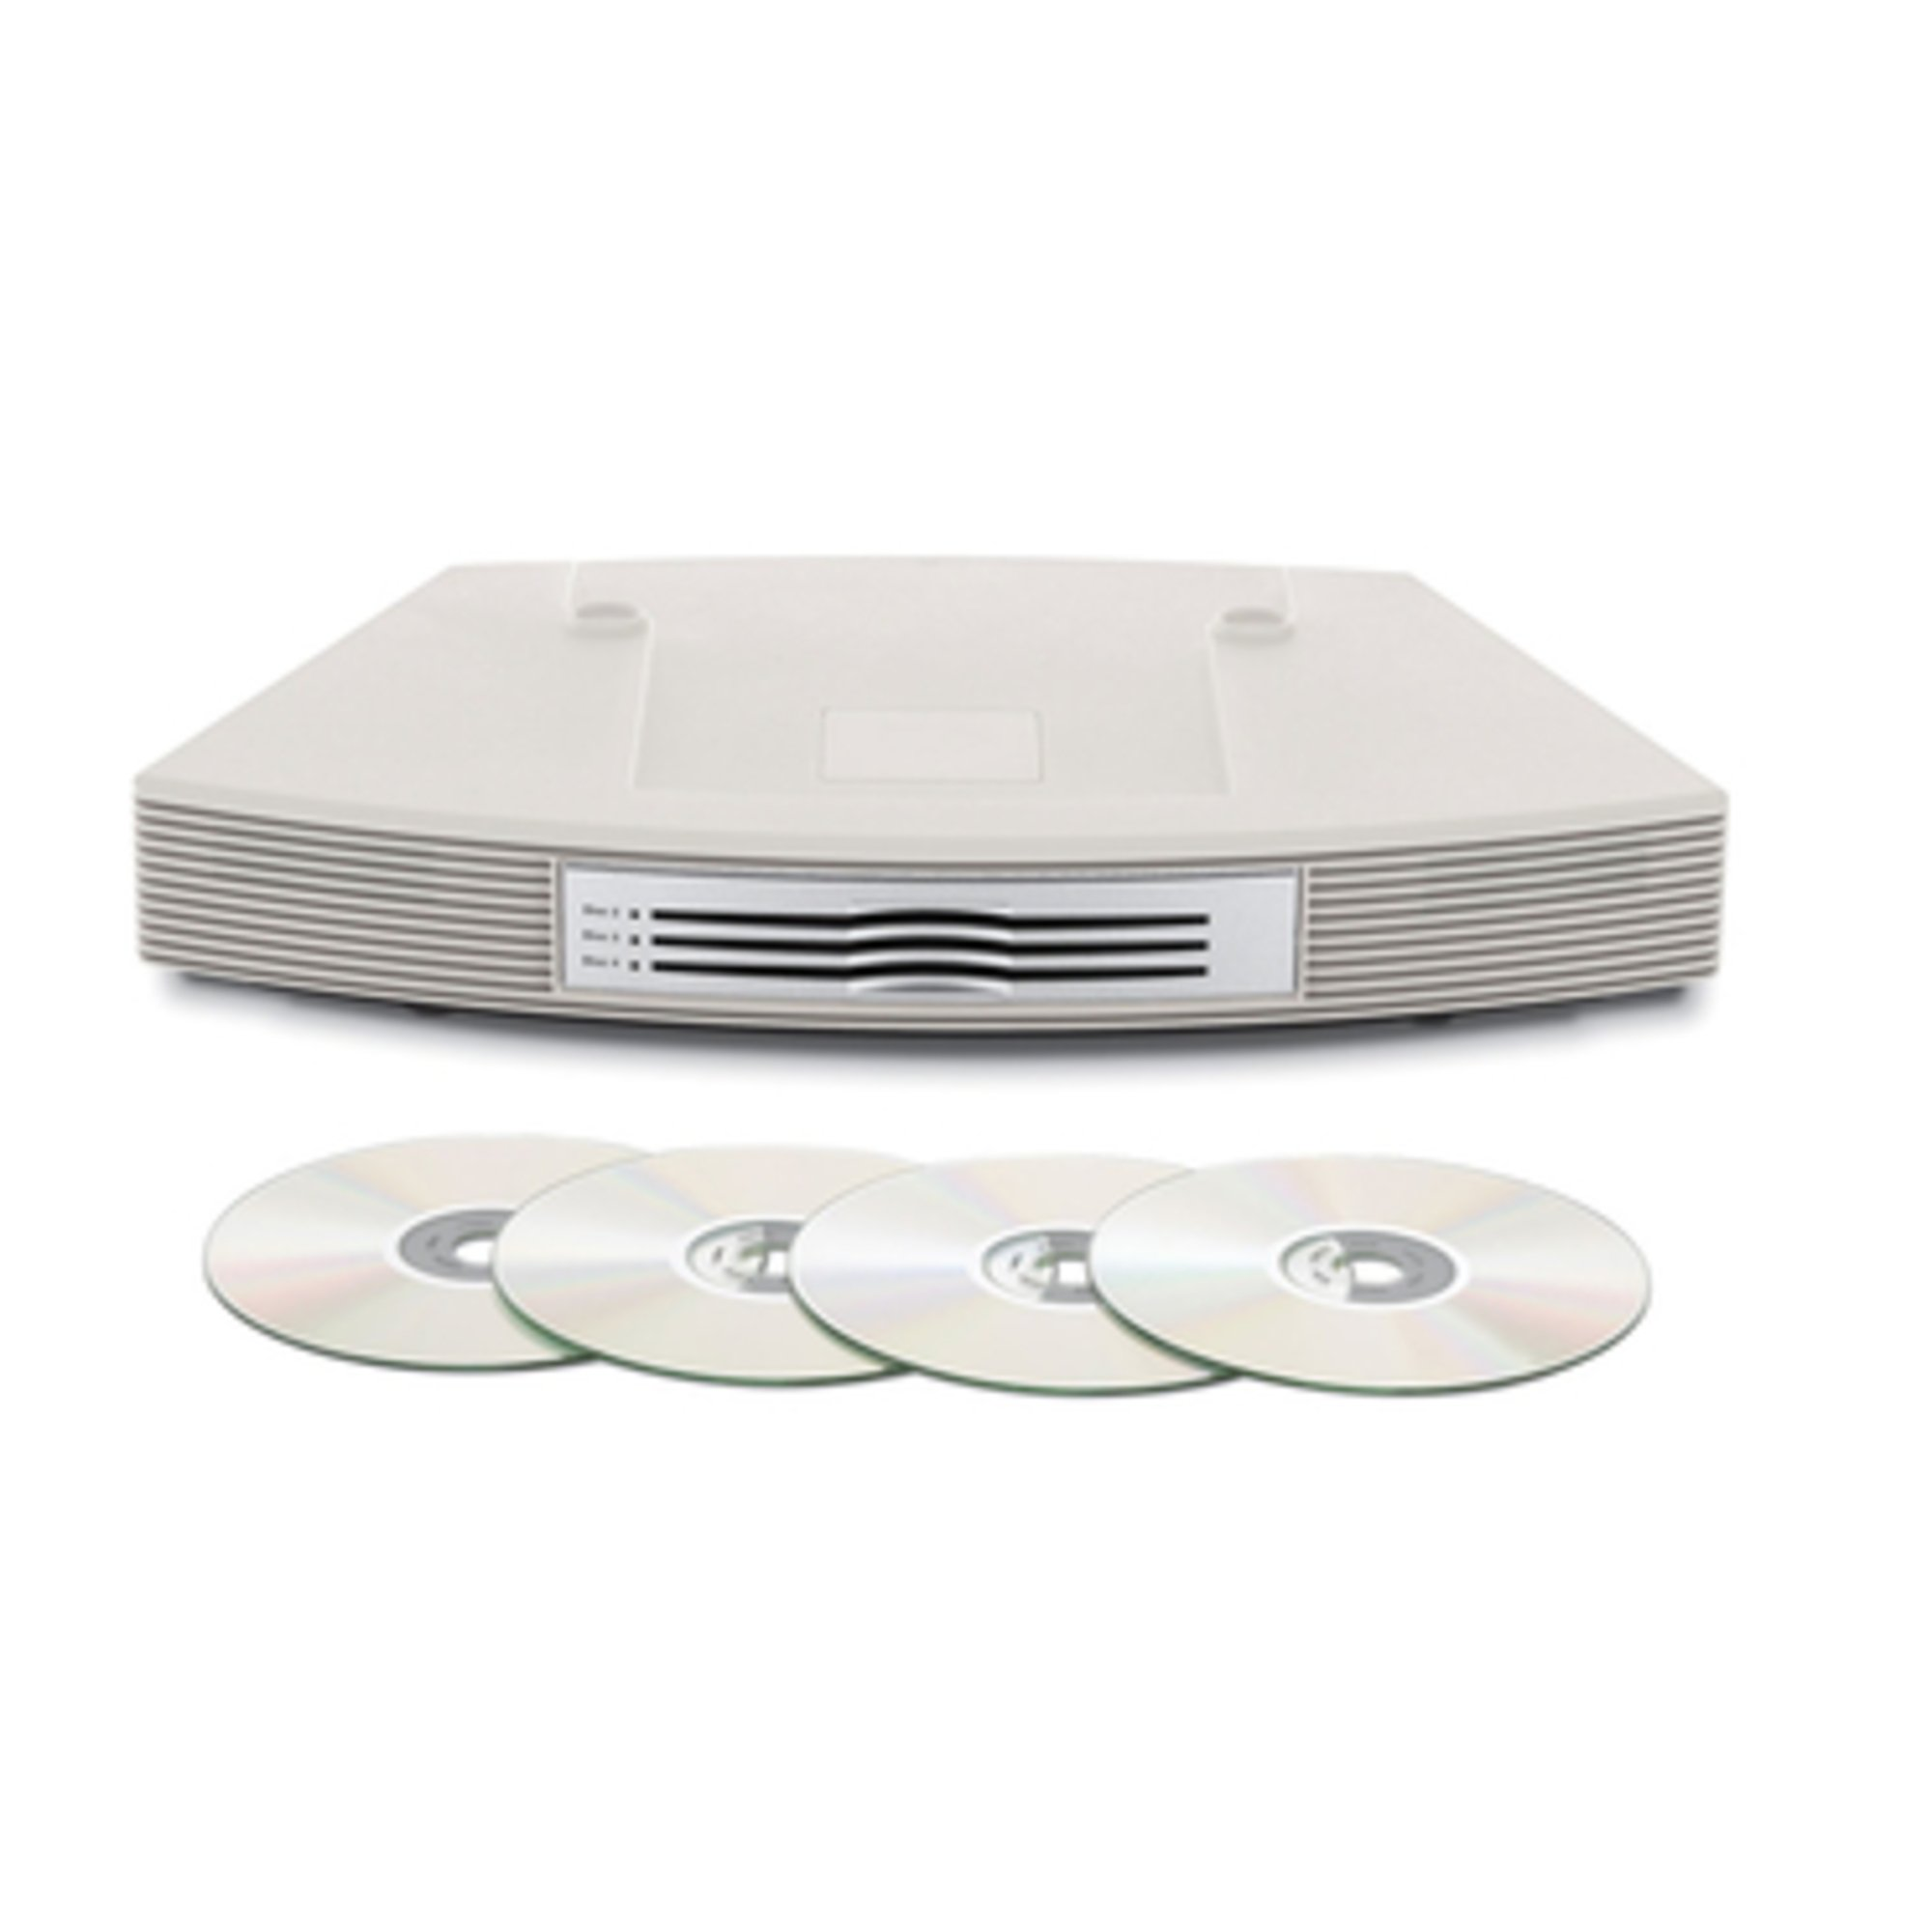 bose bose wave music system iii multi cd changer white 350496 1200 ...